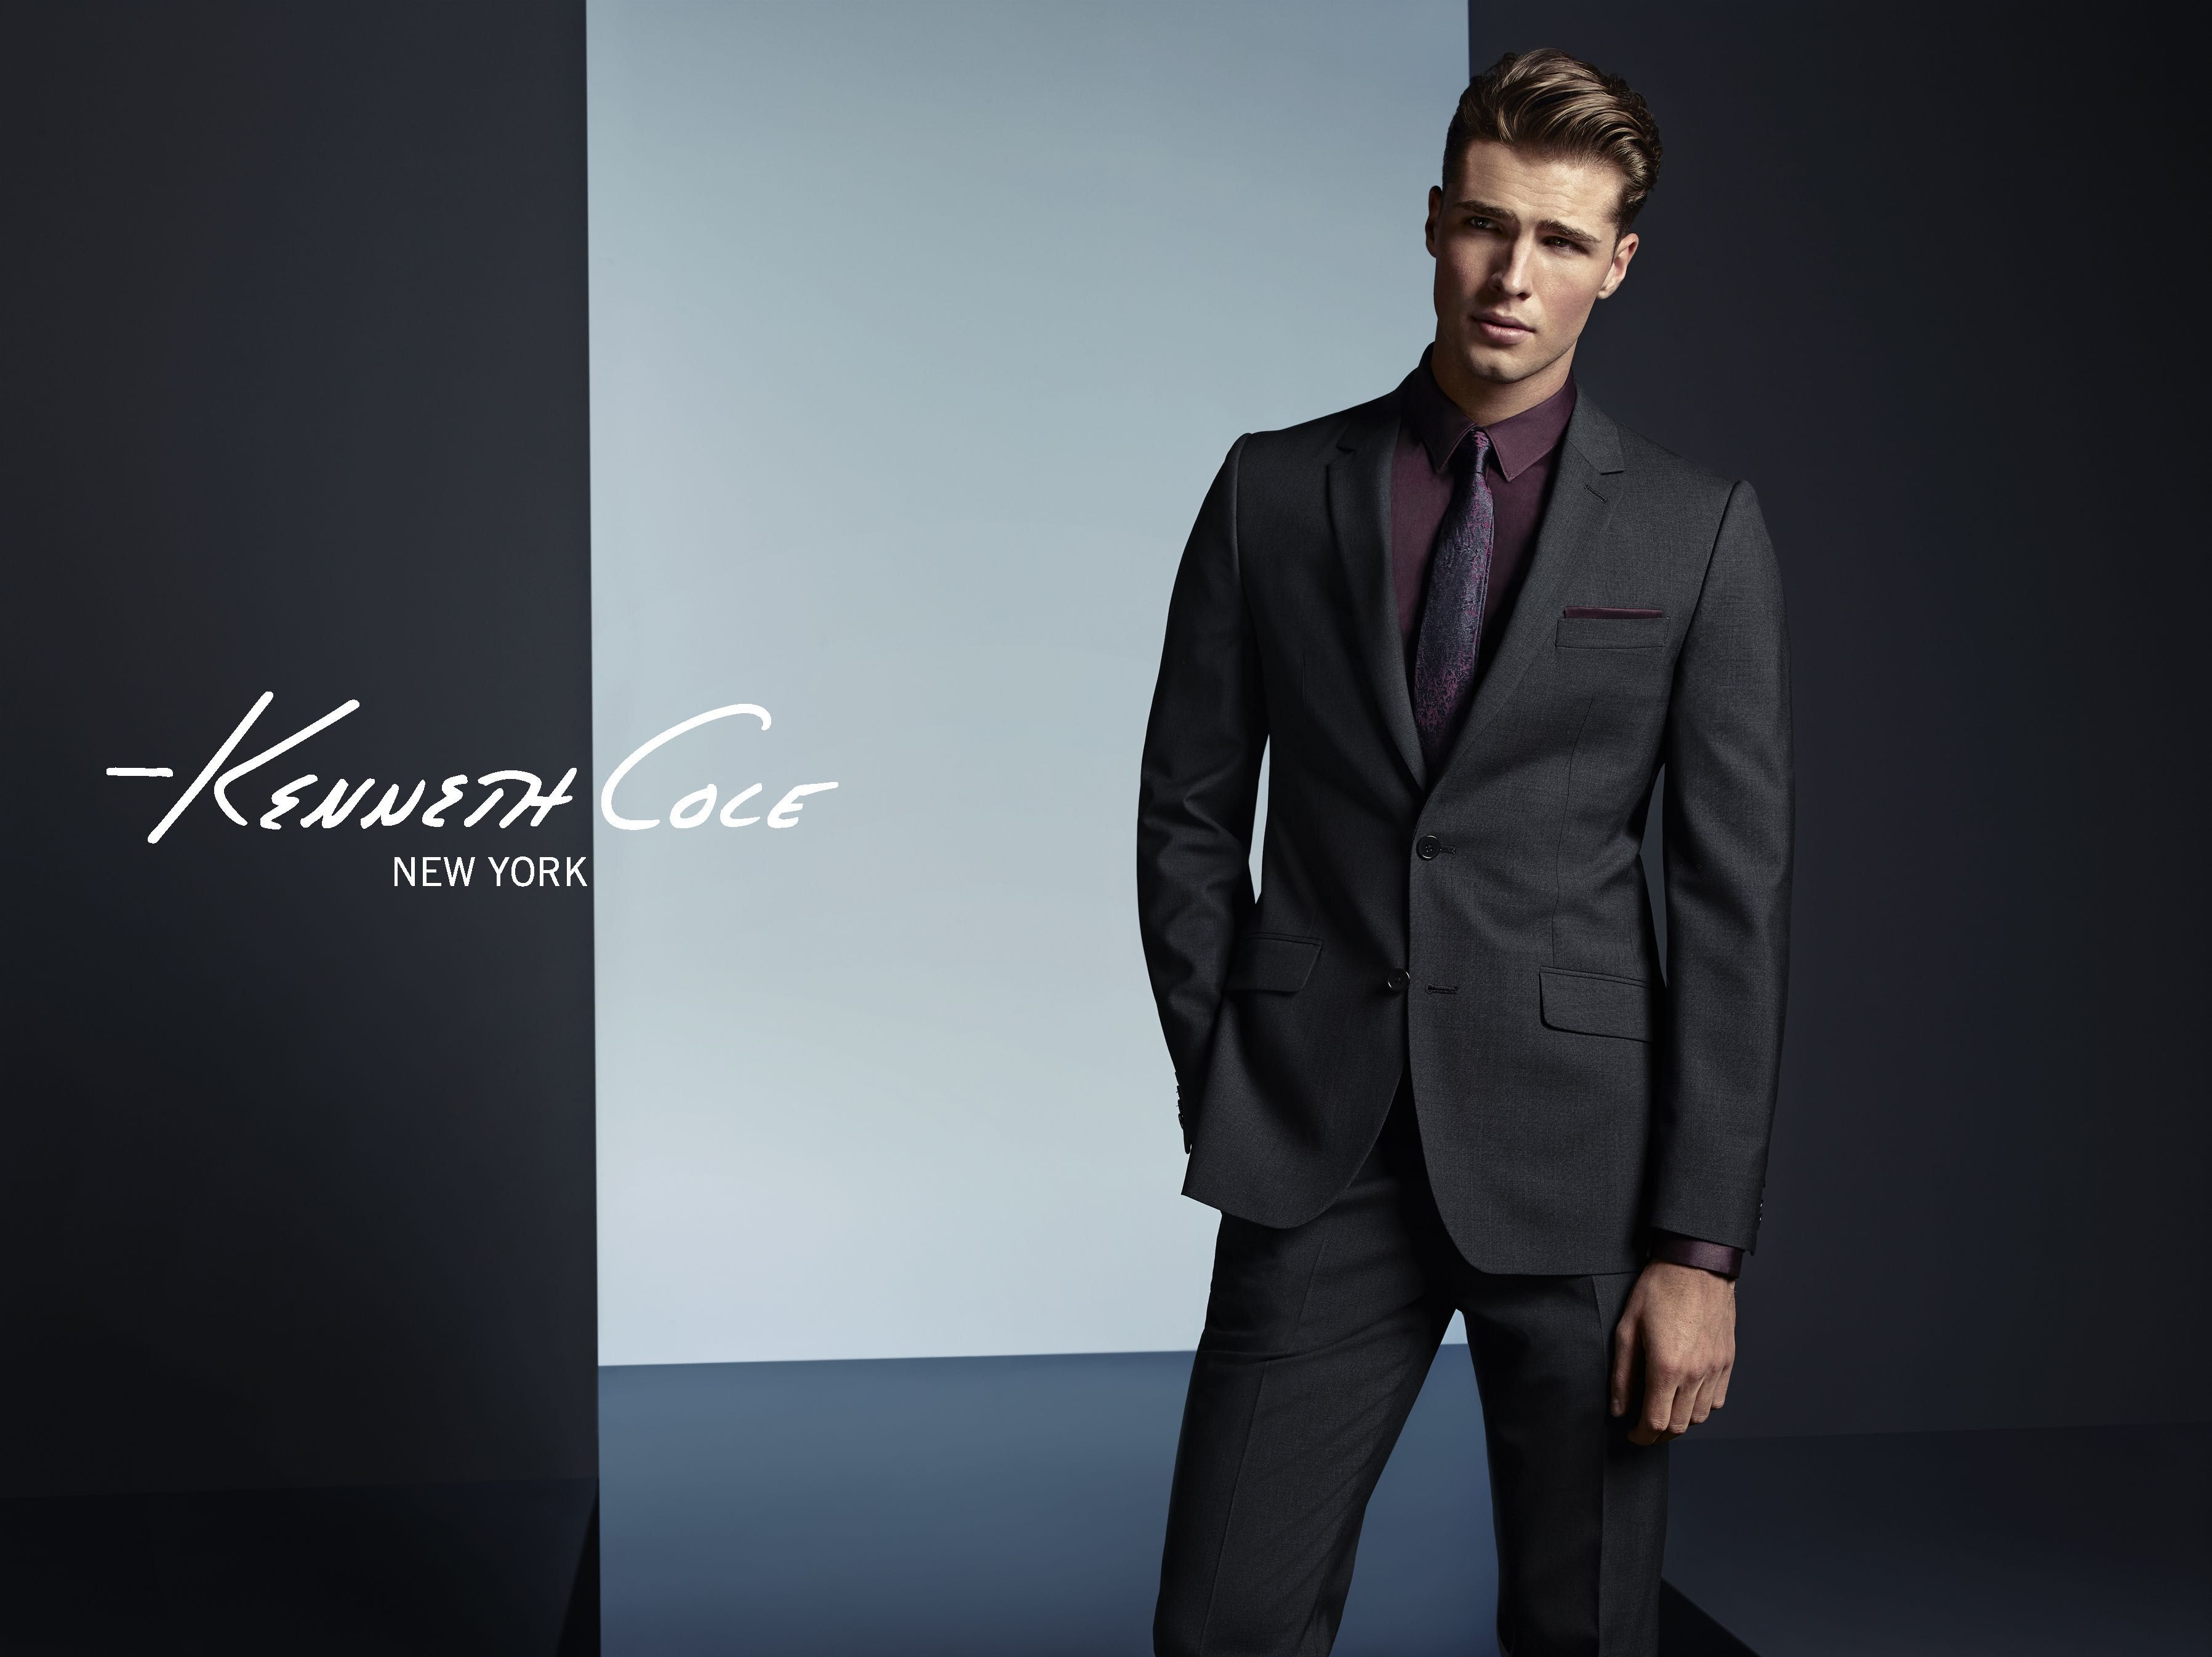 House Of Fraser Kenneth Cole Collection AutumnWinter 2014 Men's Lookbook House Of Fraser Kenneth Cole Collection AutumnWinter 2014 Men's Lookbook new images